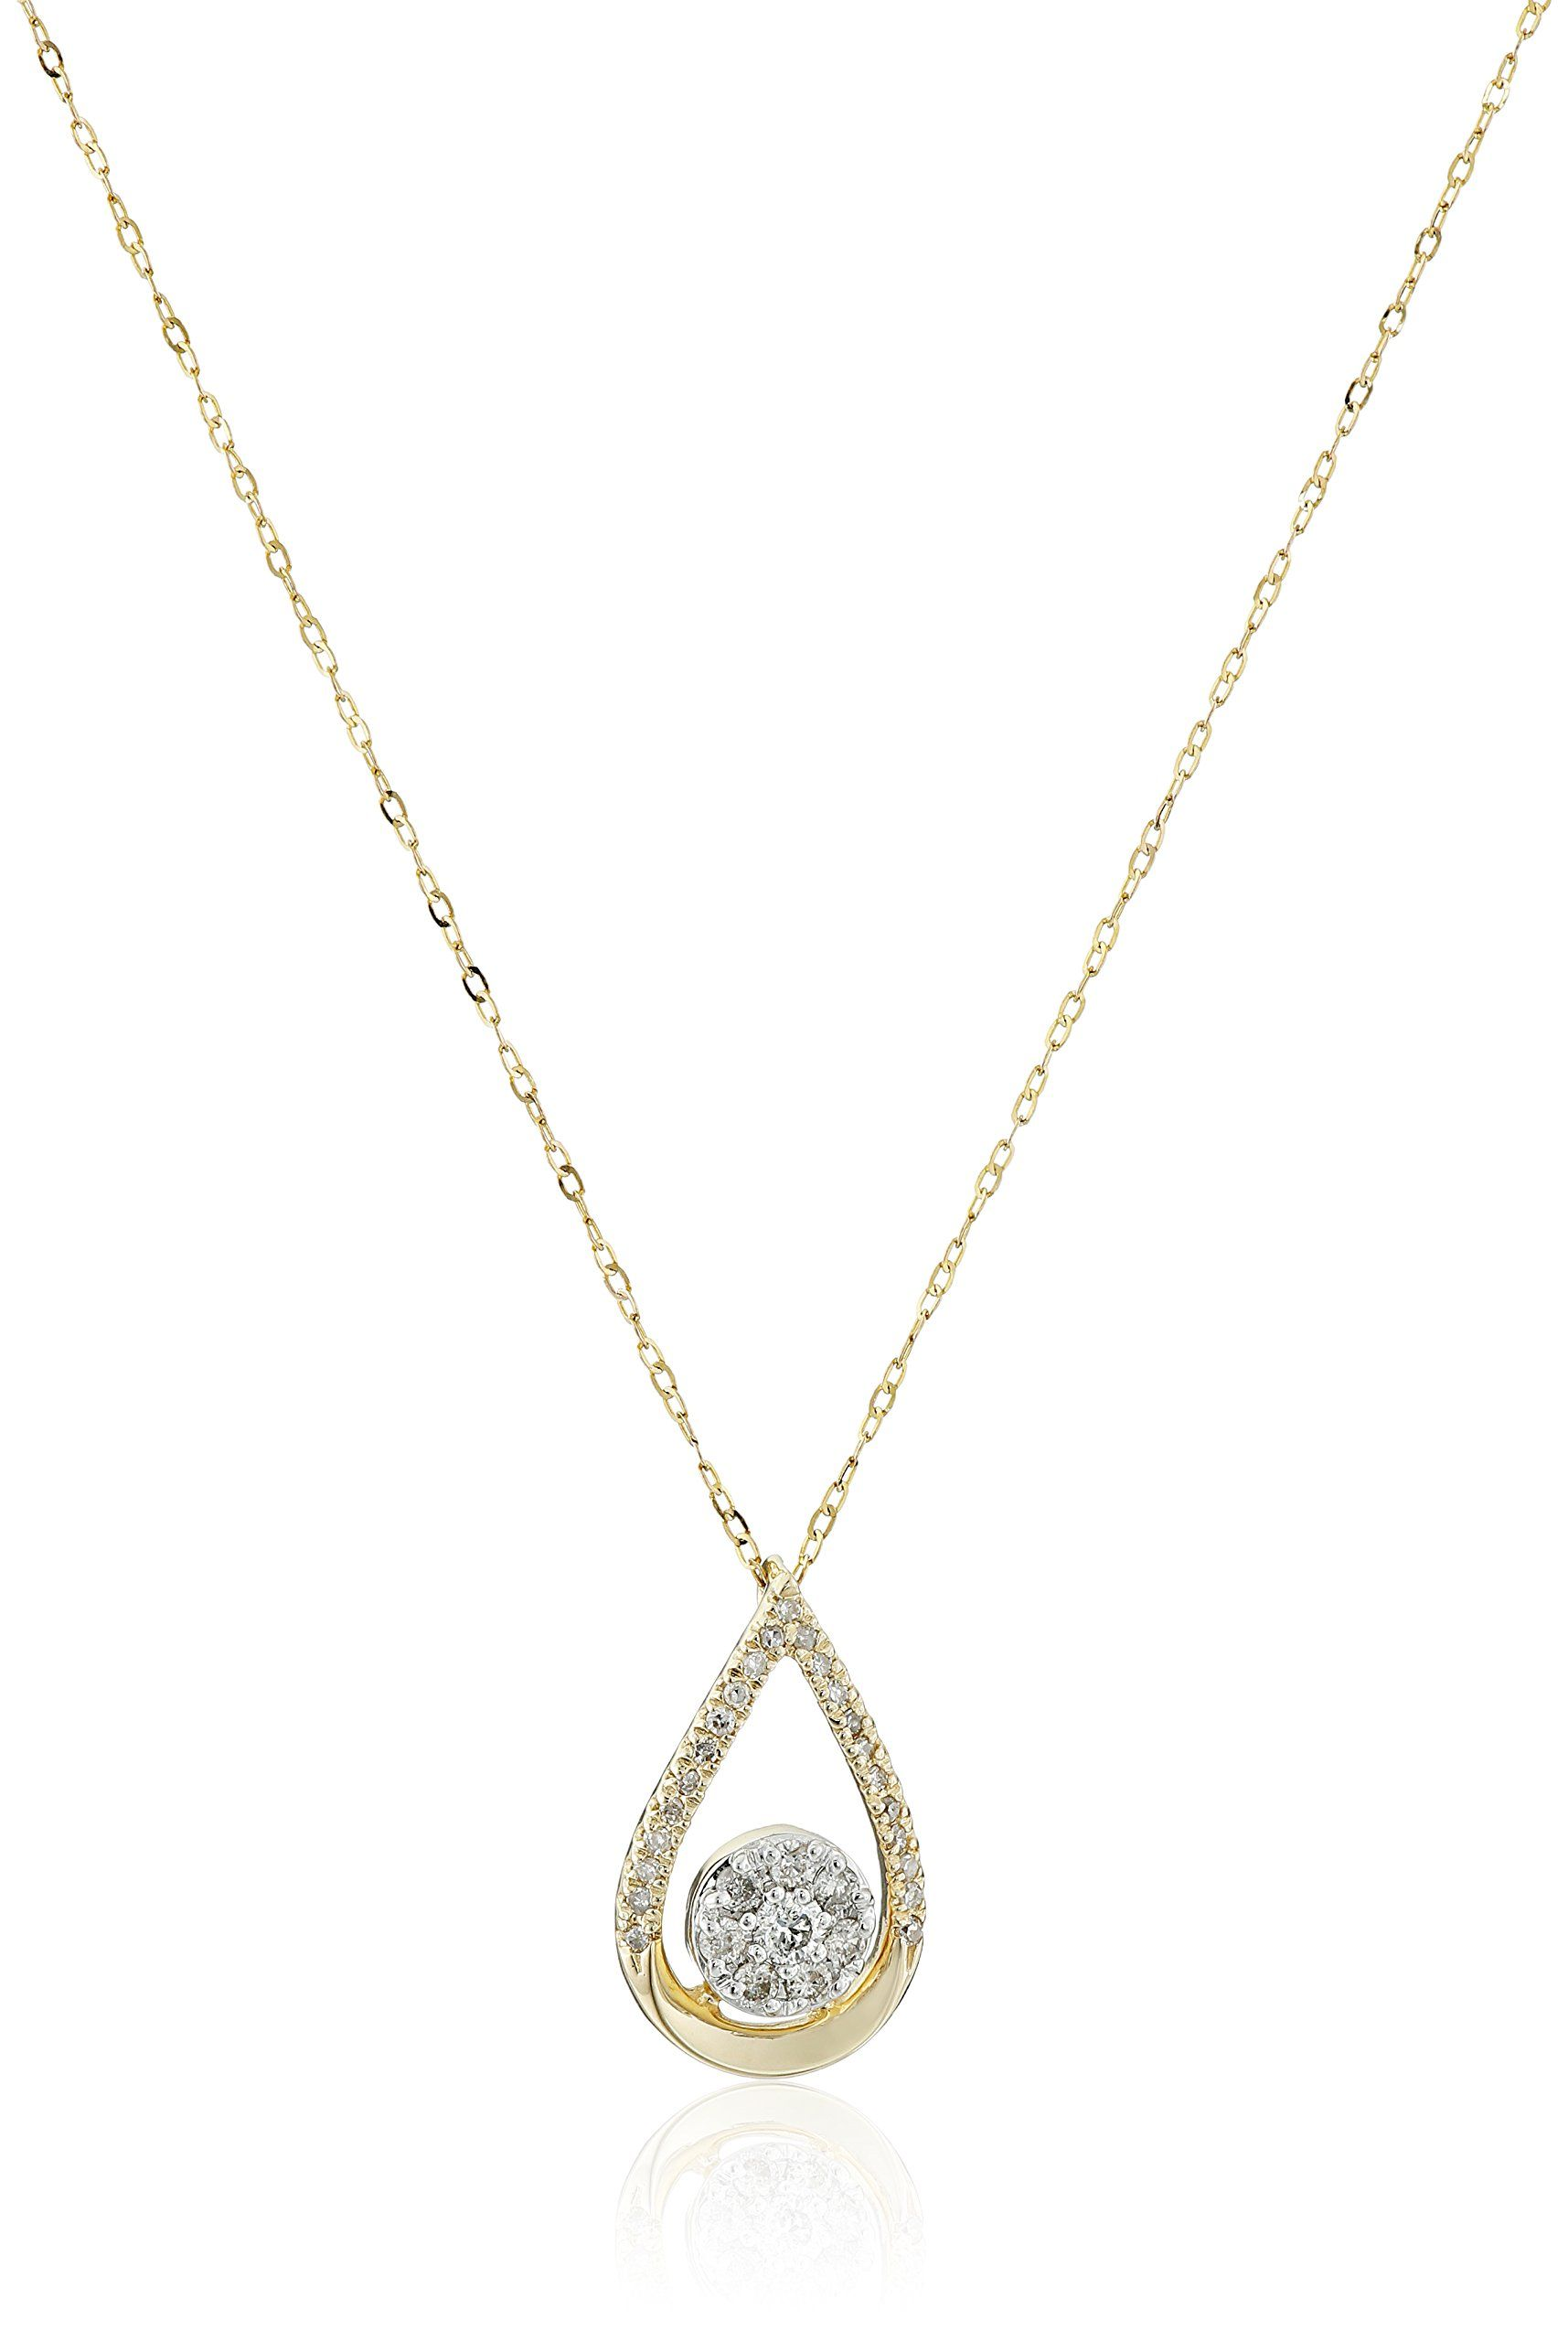 K yellow gold pear shape with pave diamond center necklace